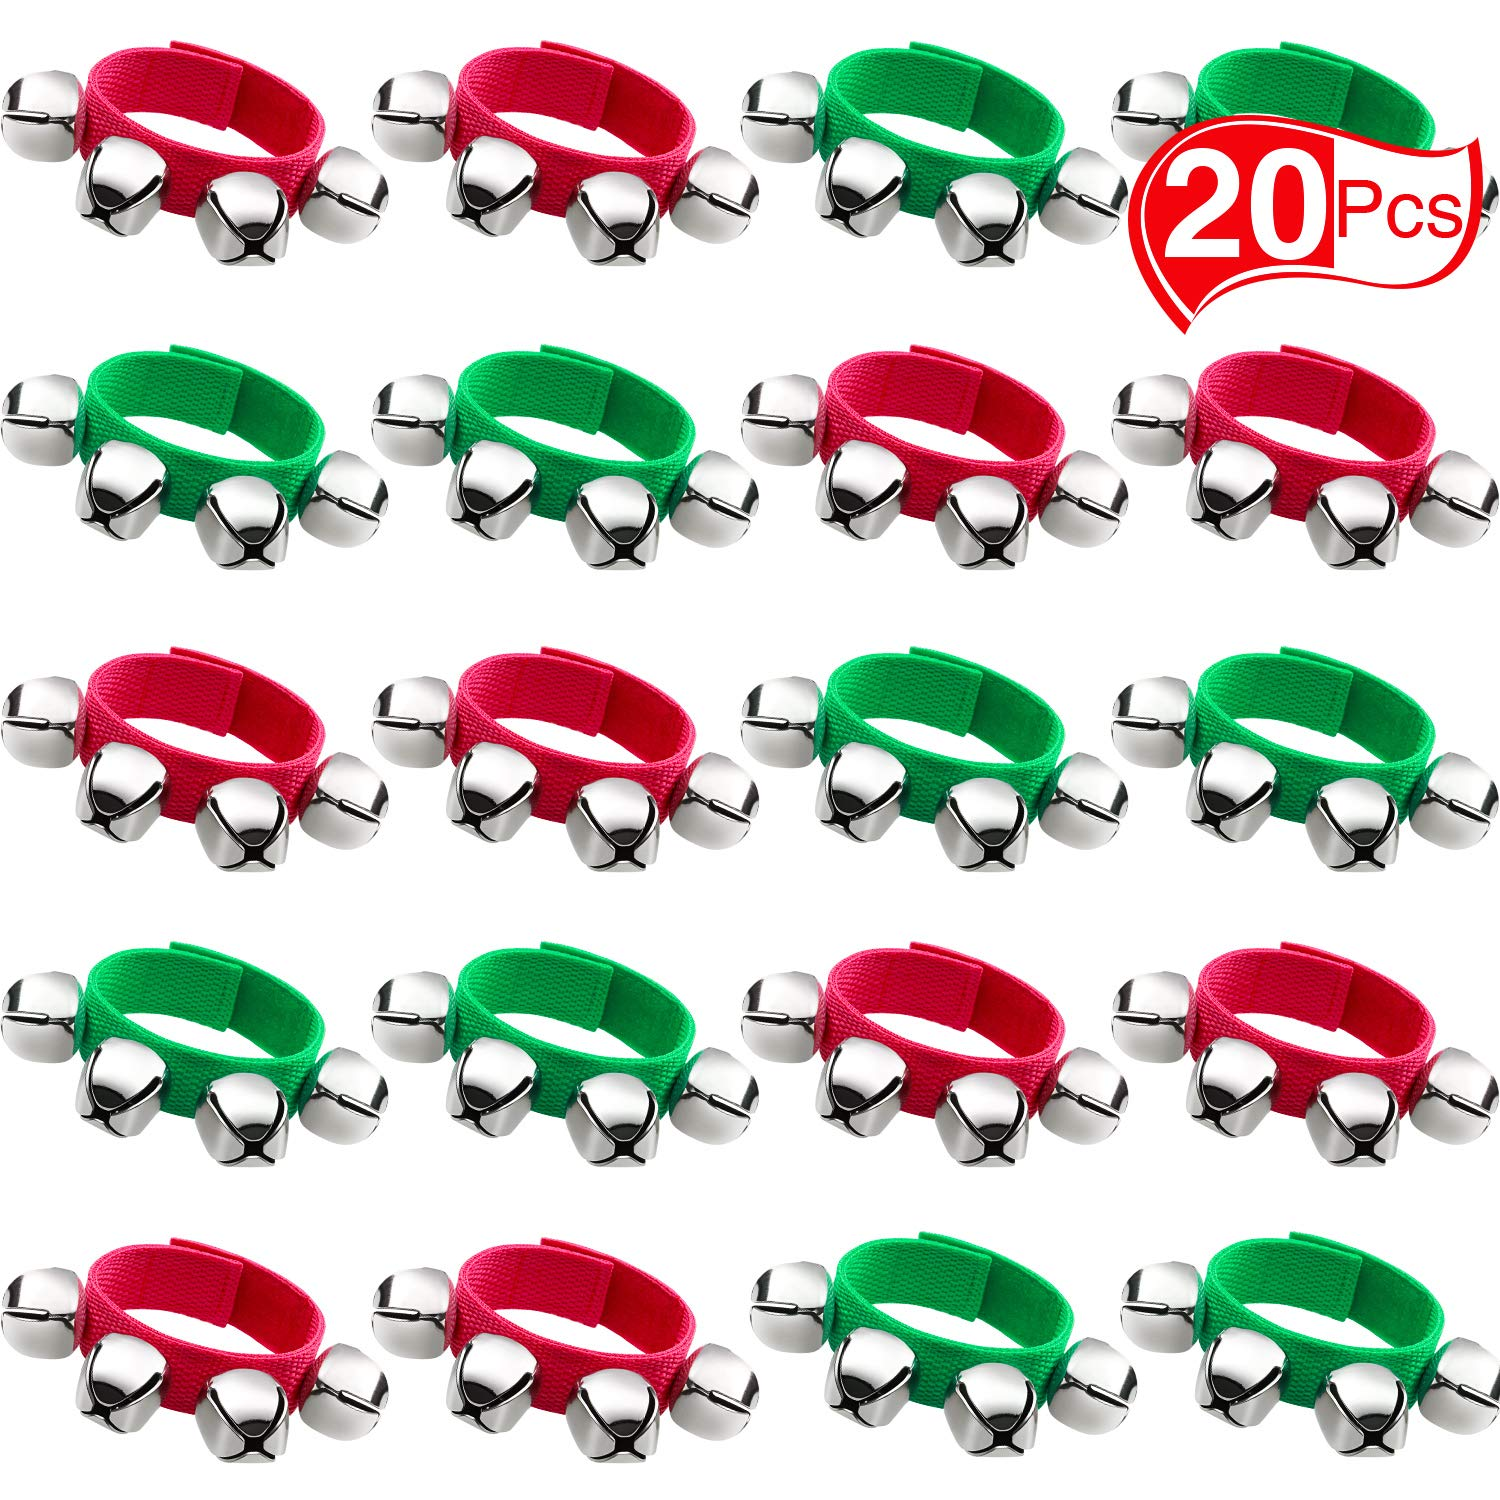 Band Wrist Bells Bracelets Jingle Musical Ankle Bells Rhythm Toys Instrument Percussion Party Favors for Christmas School Children Kids (20 Pieces, Red and Green)